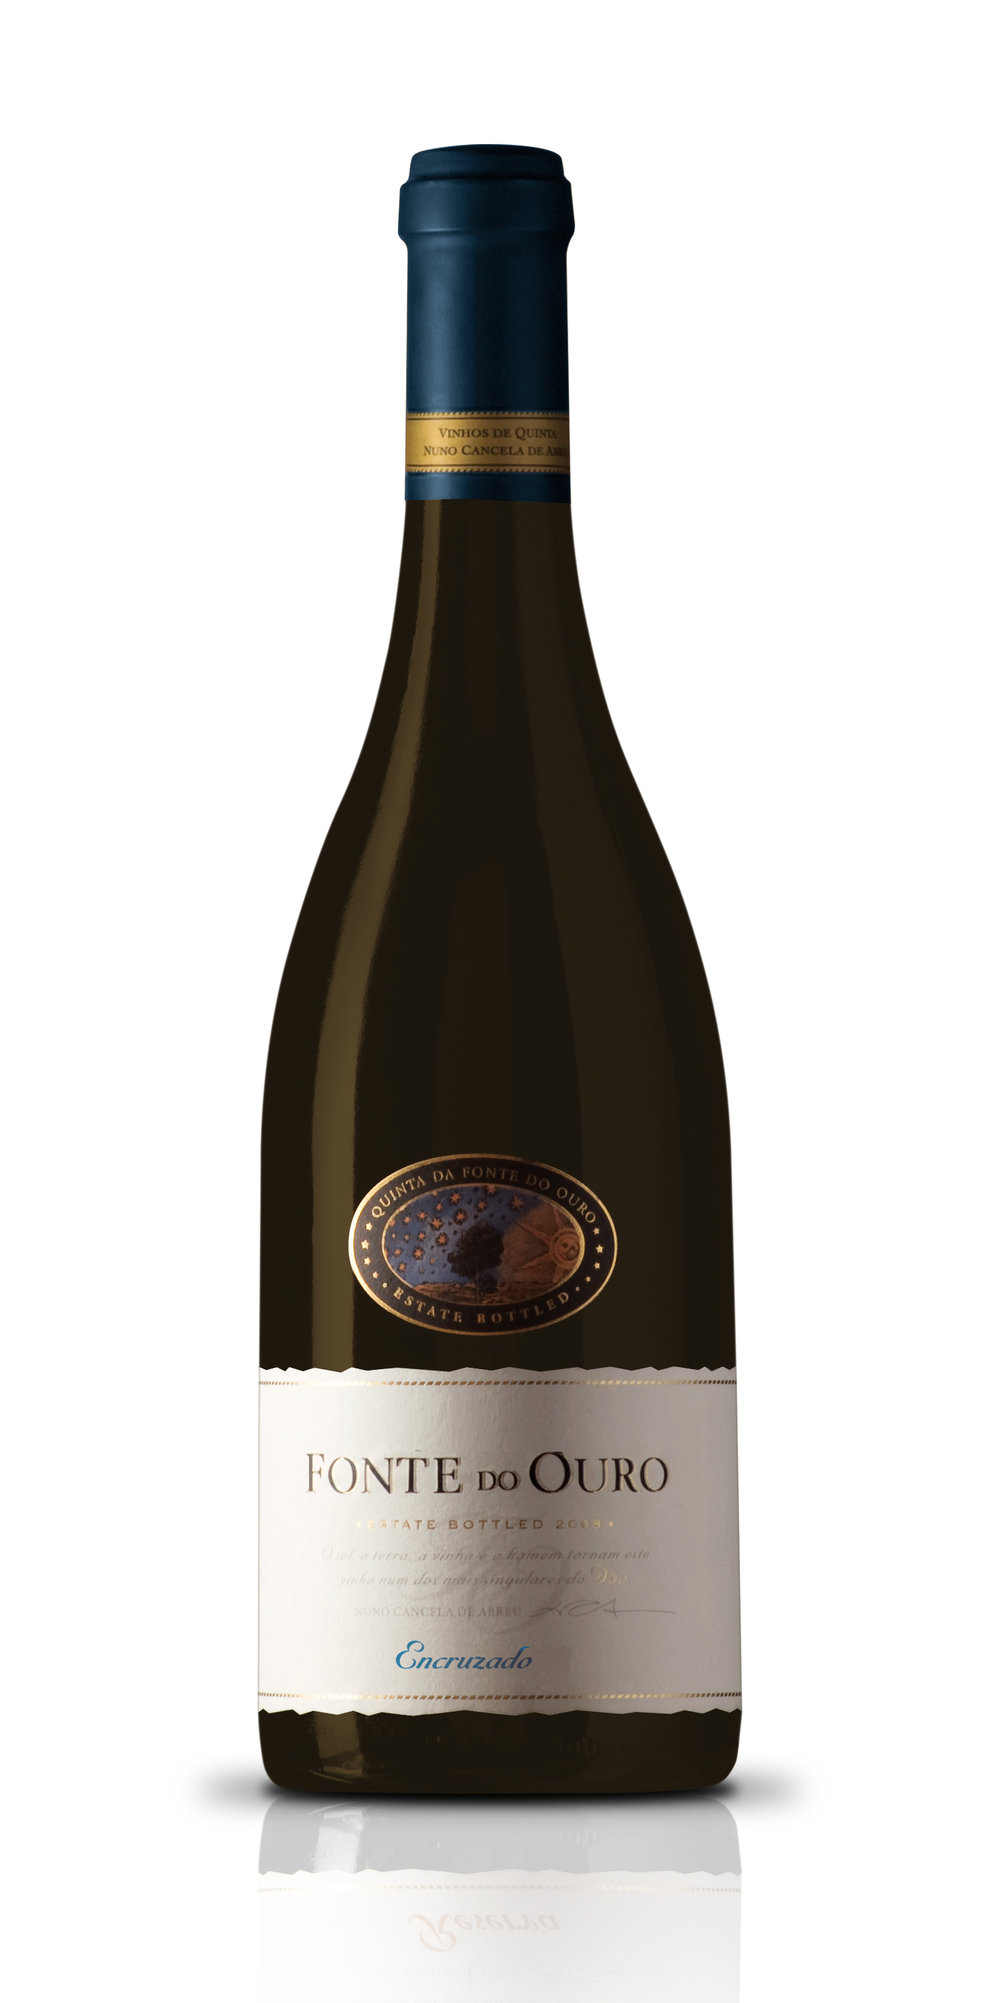 Copy of QUINTA FONTE DE OURO ENCRUZADO WHITE